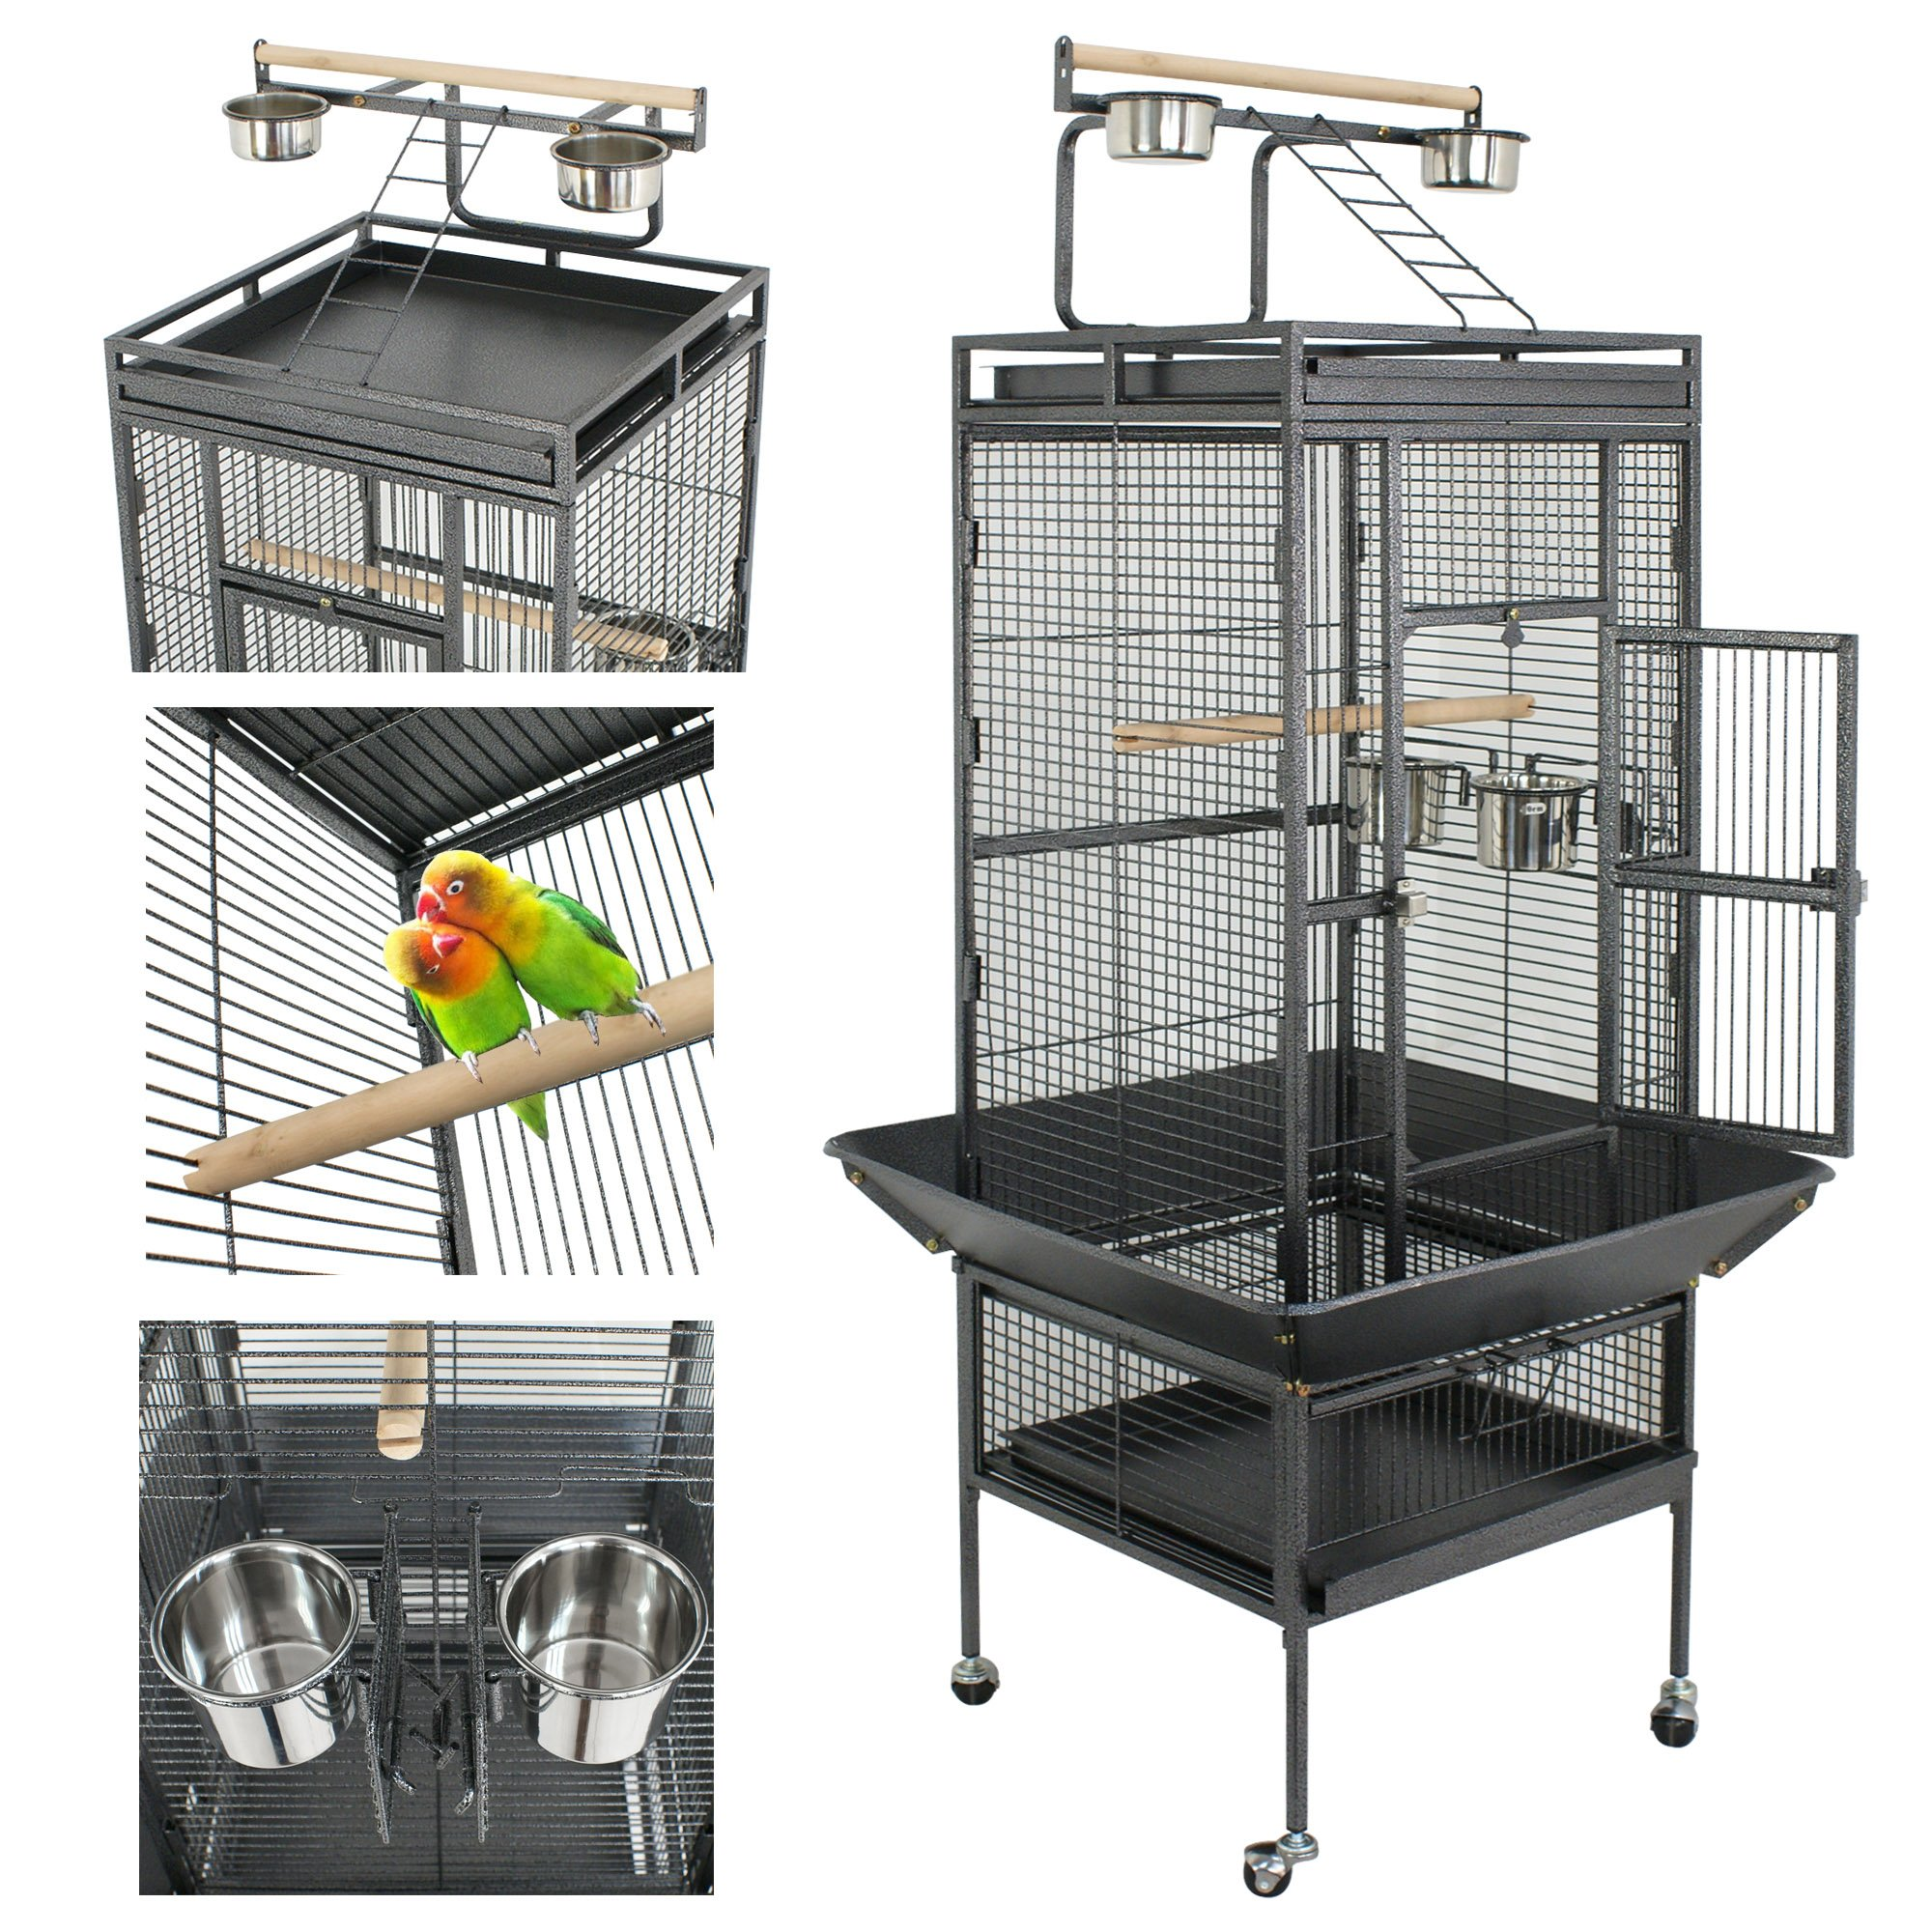 Super Deal 53''/61''/68'' Extra Large Bird Cage w/ Play Top Parrot Chinchilla Cage Macaw Cockatiel Cockatoo Pet House, 61 inch by SuperDealUsa